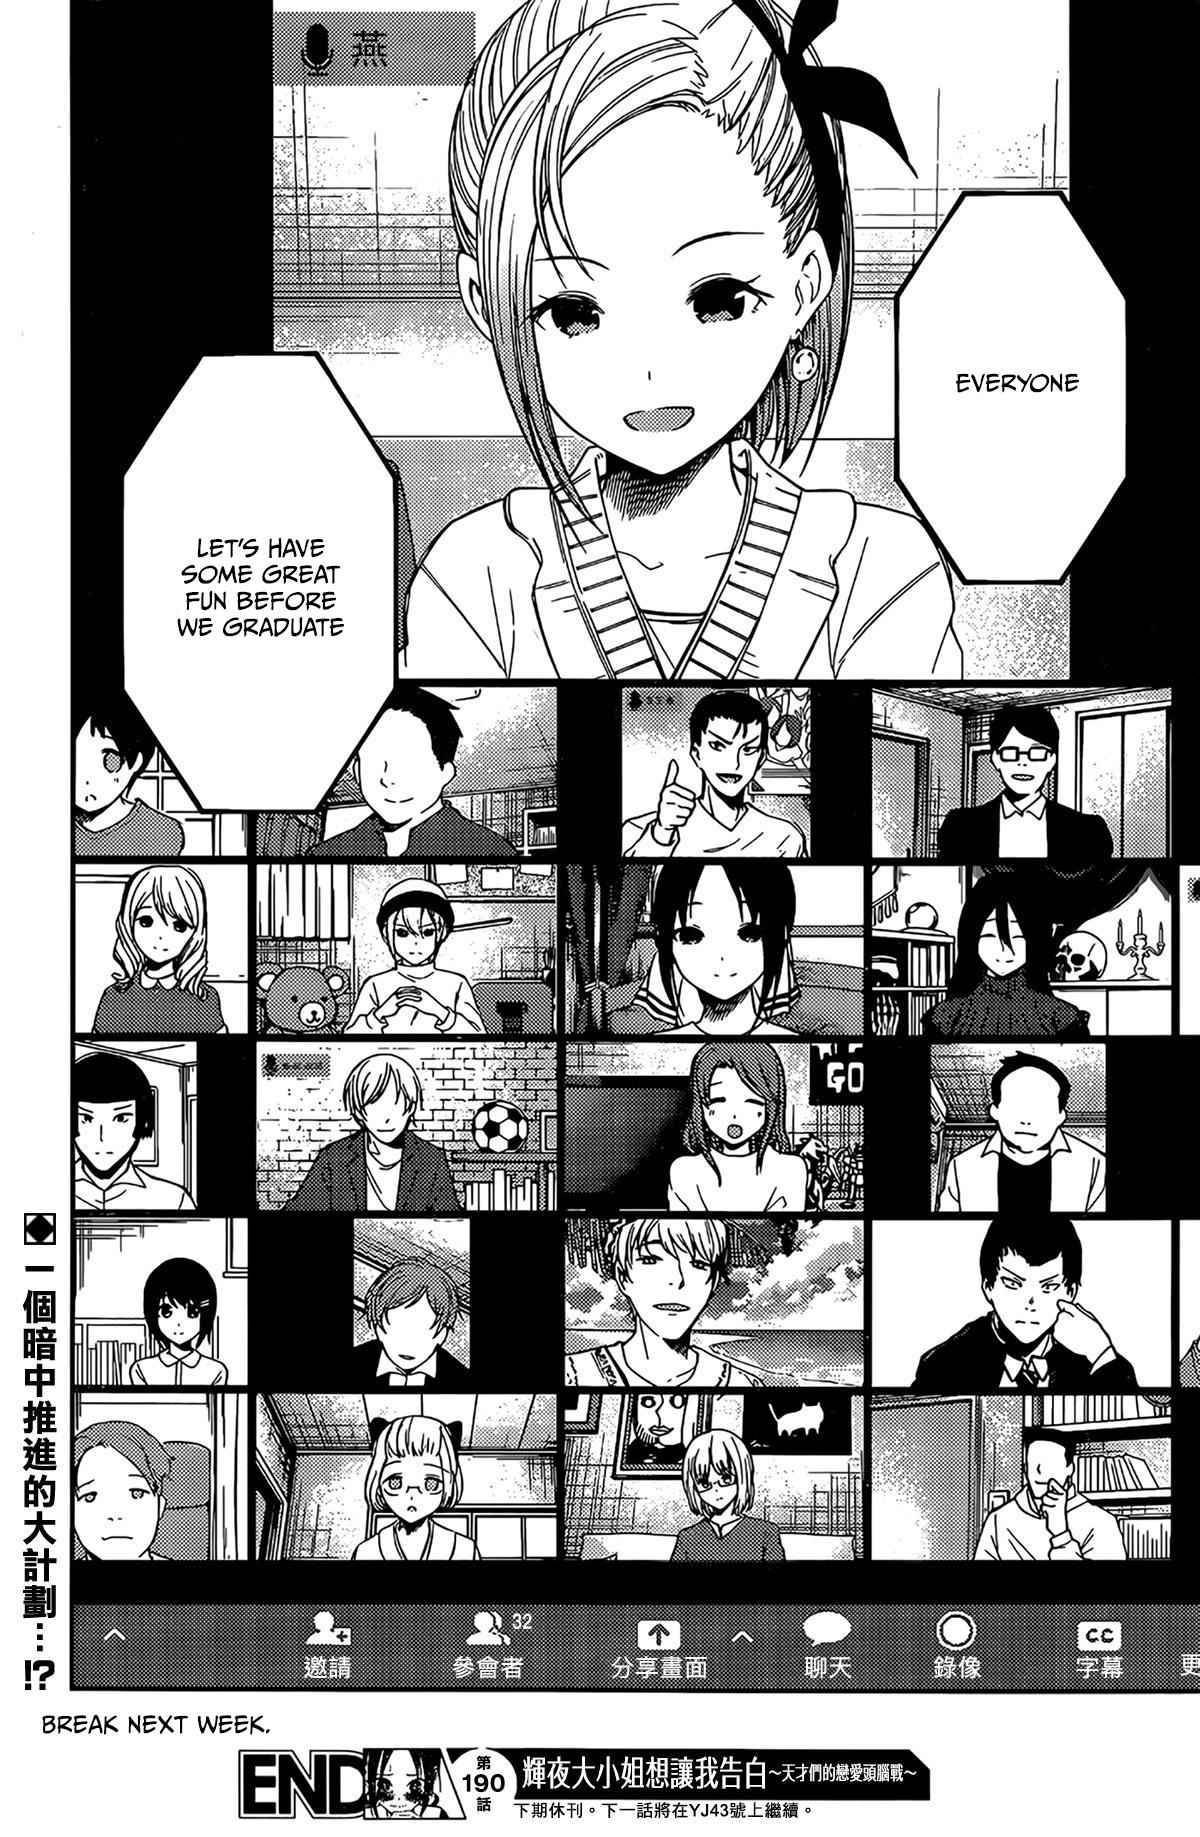 aka akasaka, aka akasaka face, aka akasaka gender, aka akasaka interview, kaguya sama love is war, kaguya sama love is war aka akasaka, kaguya sama love is war chapter 142, kaguya sama love is war episodes, kaguya sama love is war kissmanga, kaguya sama love is war manga baka updates, kaguya sama love is war manga reddit, kaguya sama love is war mangahere, kaguya sama love is war read, kaguya sama love is war read online, kaguya sama love is war reddit, kaguya sama reddit, kaguya-sama: love is war (film), miyuki shirogane, miyuki shirogane voice actor